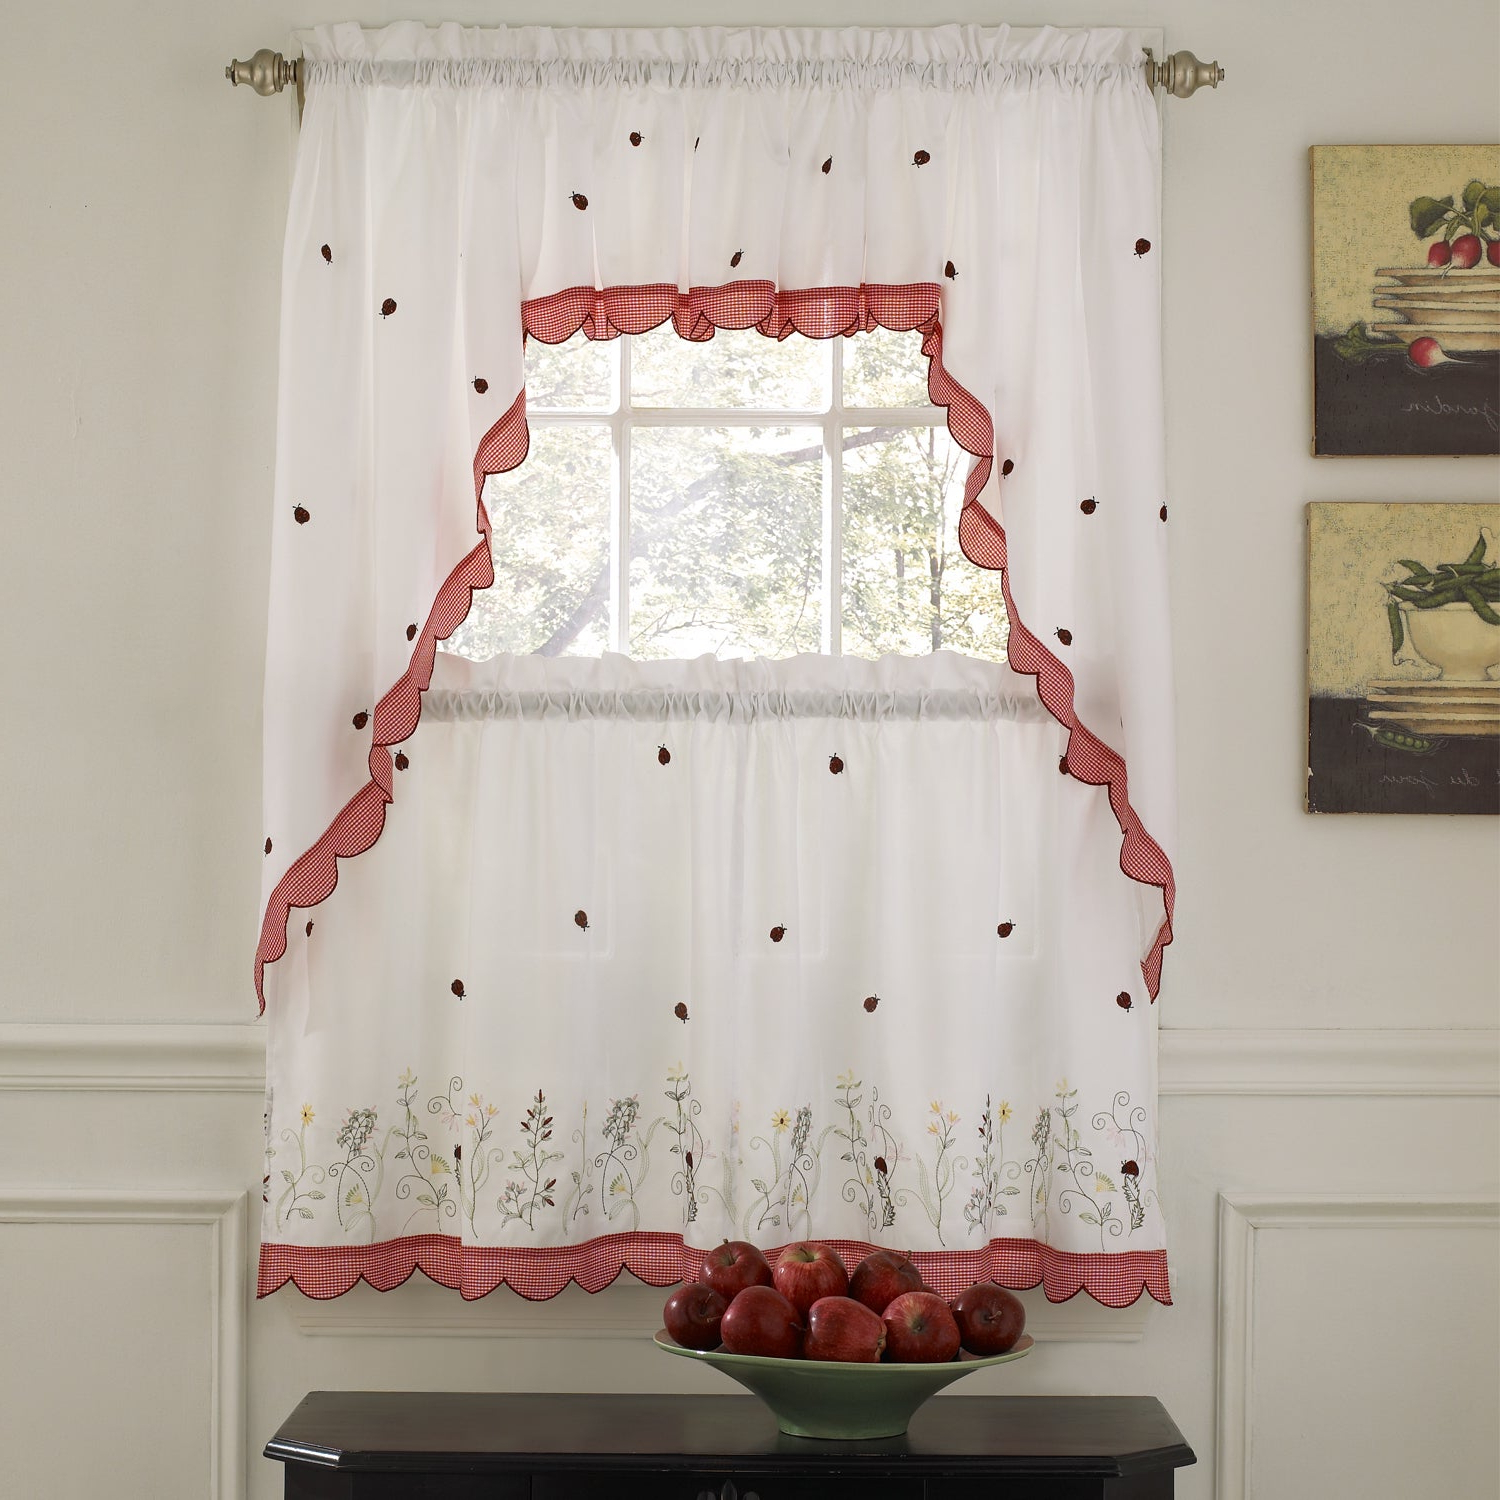 Most Recently Released White Tone On Tone Raised Microcheck Semisheer Window Curtain Pieces Pertaining To Details About Embroidered Ladybugs Window Curtain Pieces (Gallery 10 of 20)